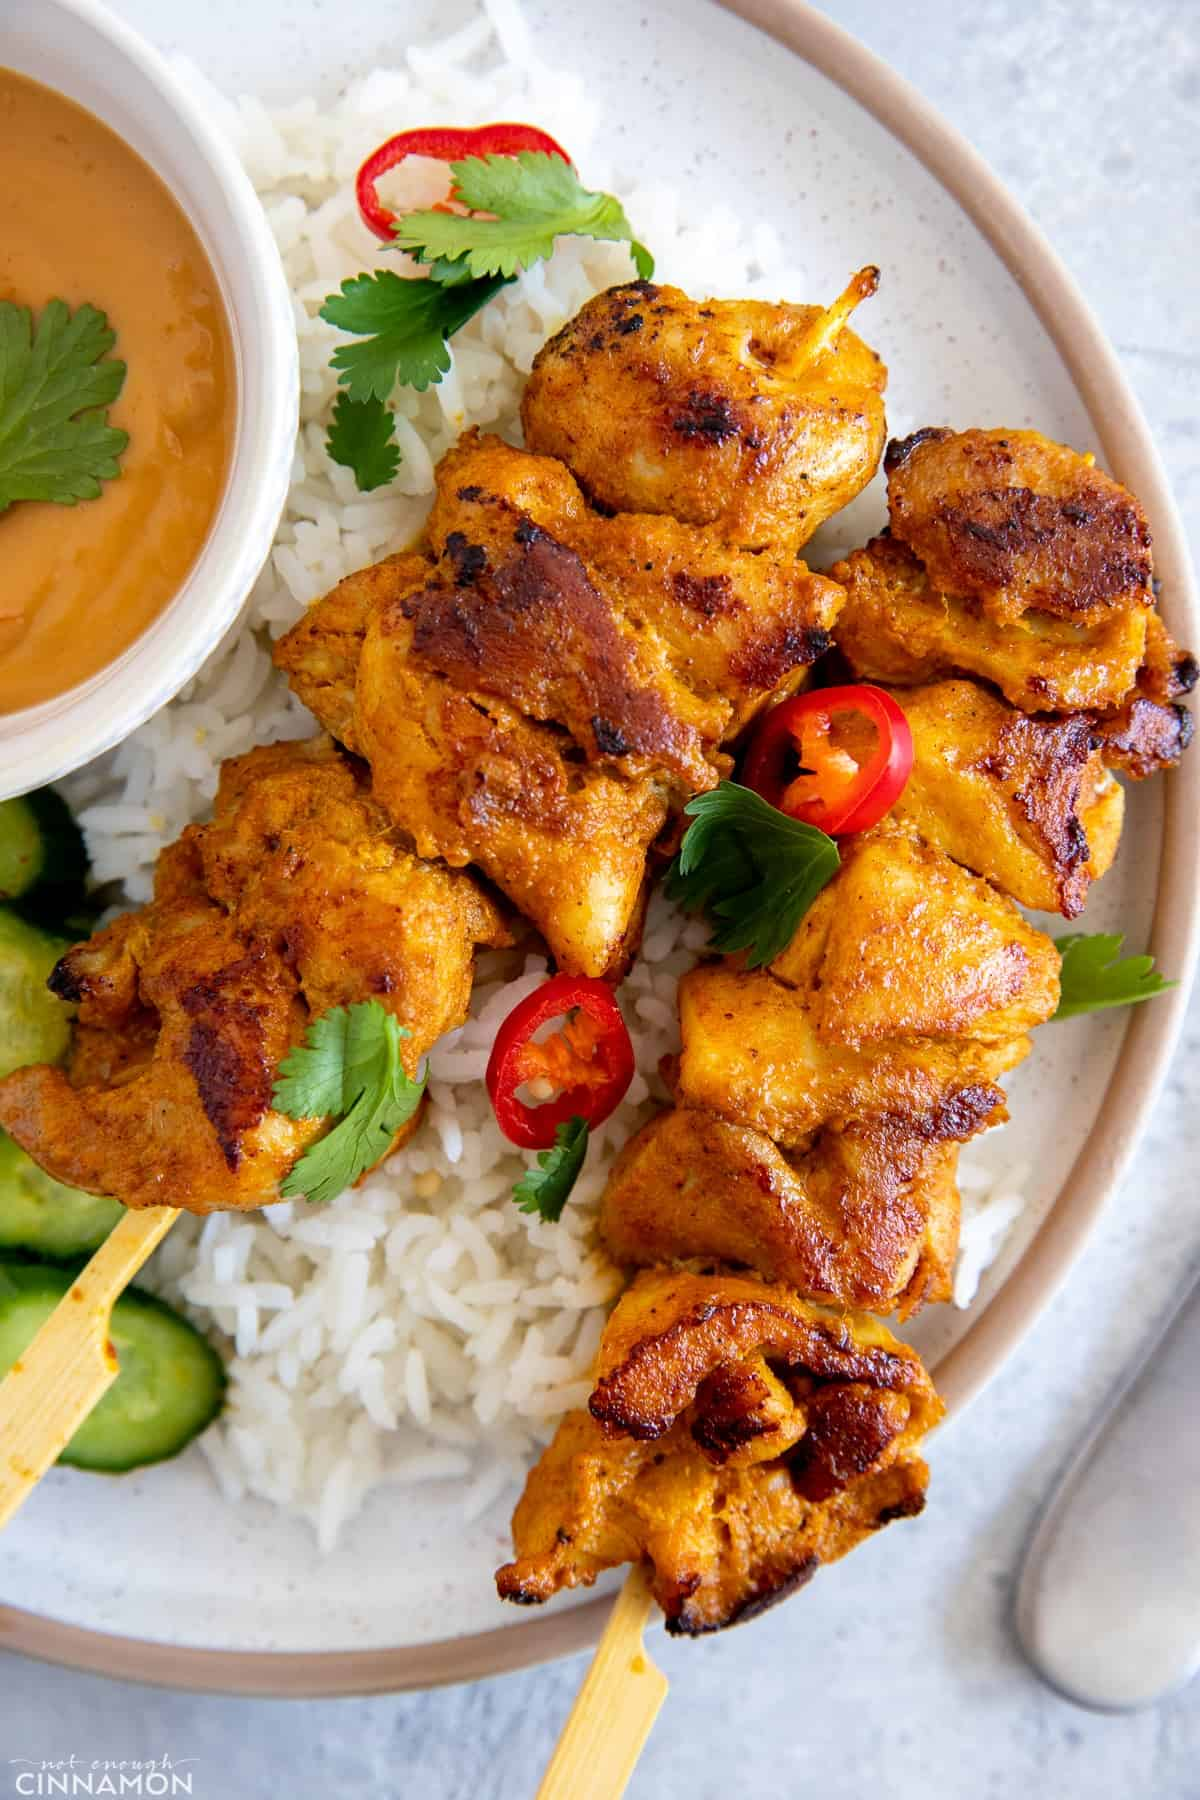 two juicy marinated Thai style chicken skewers served on a bed of rice with a side of peanut sauce